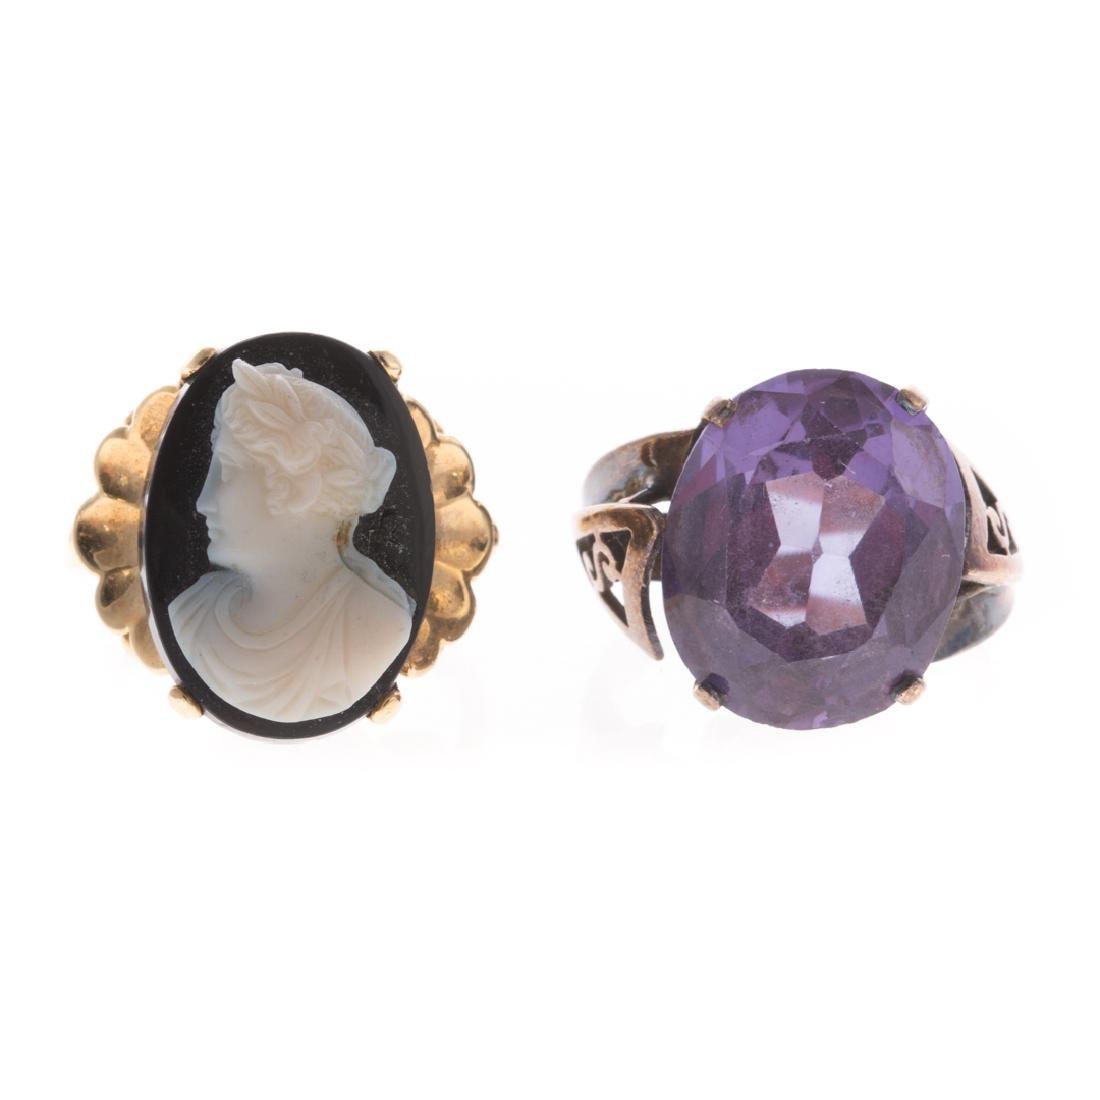 A Pair of Vintage Gemstone rings in Gold